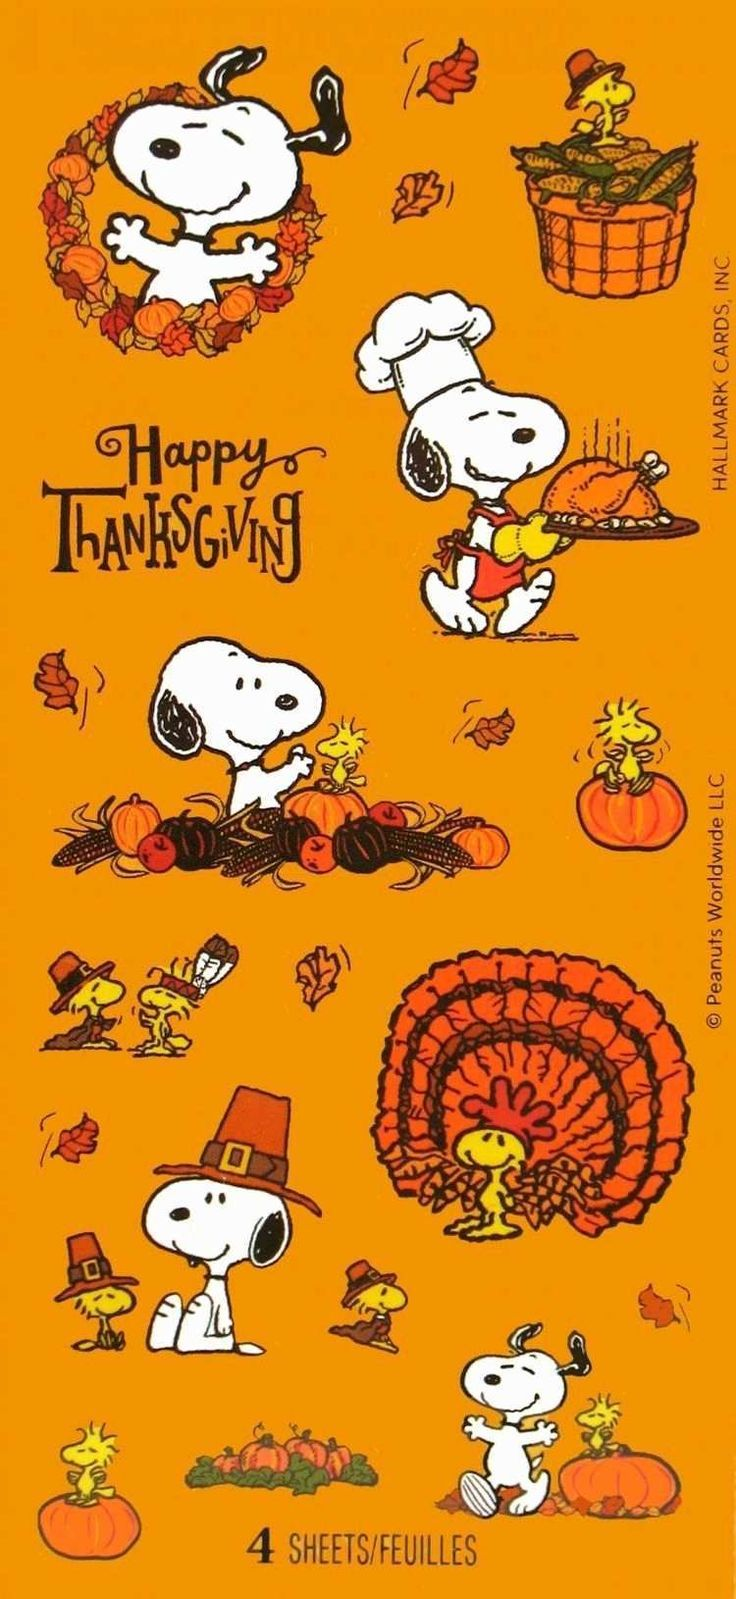 "Snoopy ""Happy Thanksgiving"" Aufkleber #halloweenbackgroundswallpapers"